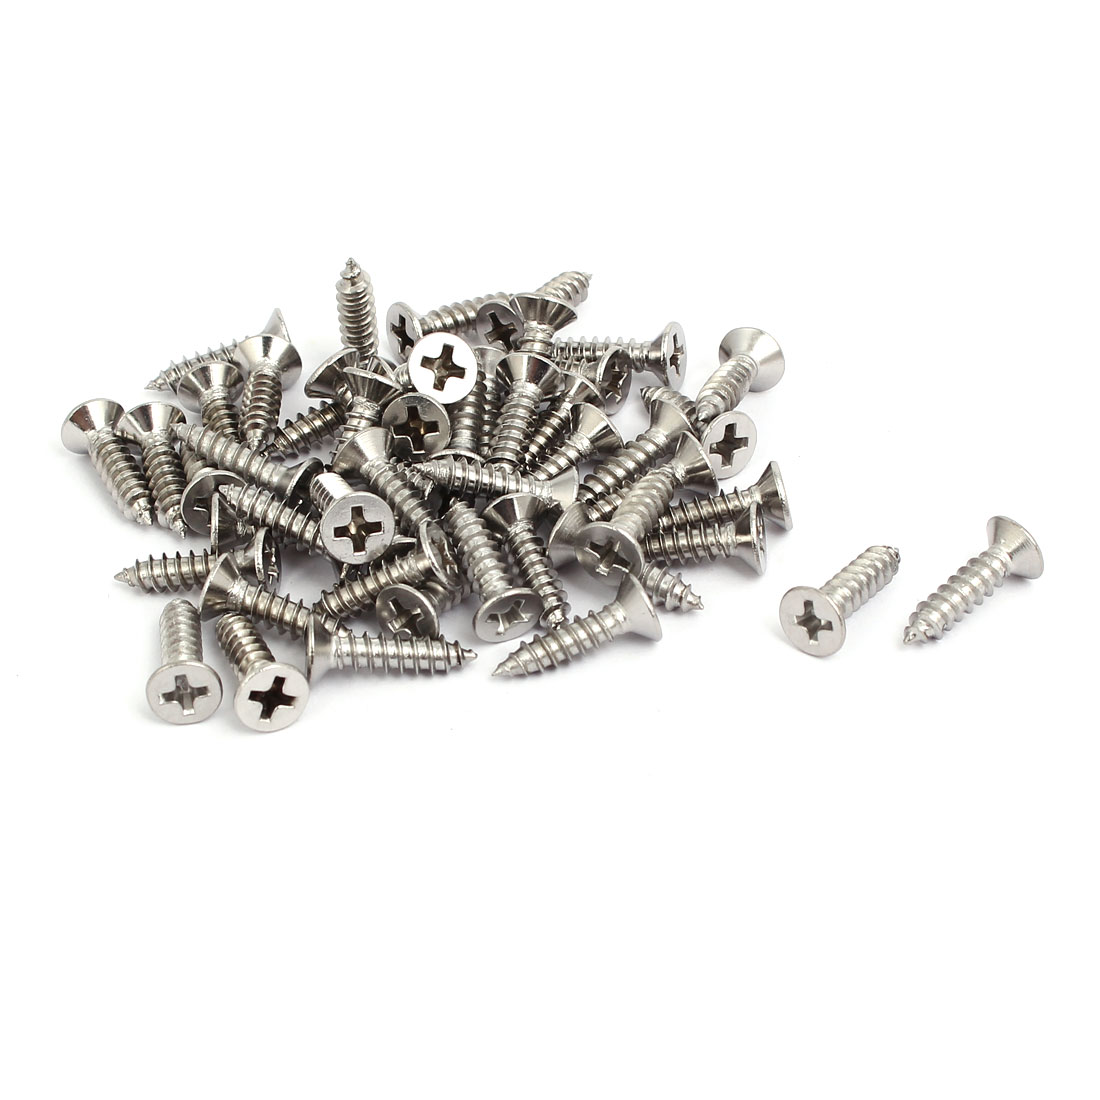 M4x16mm 304 Stainless Steel Phillips Drive Flat Head Self Tapping Screws 50pcs